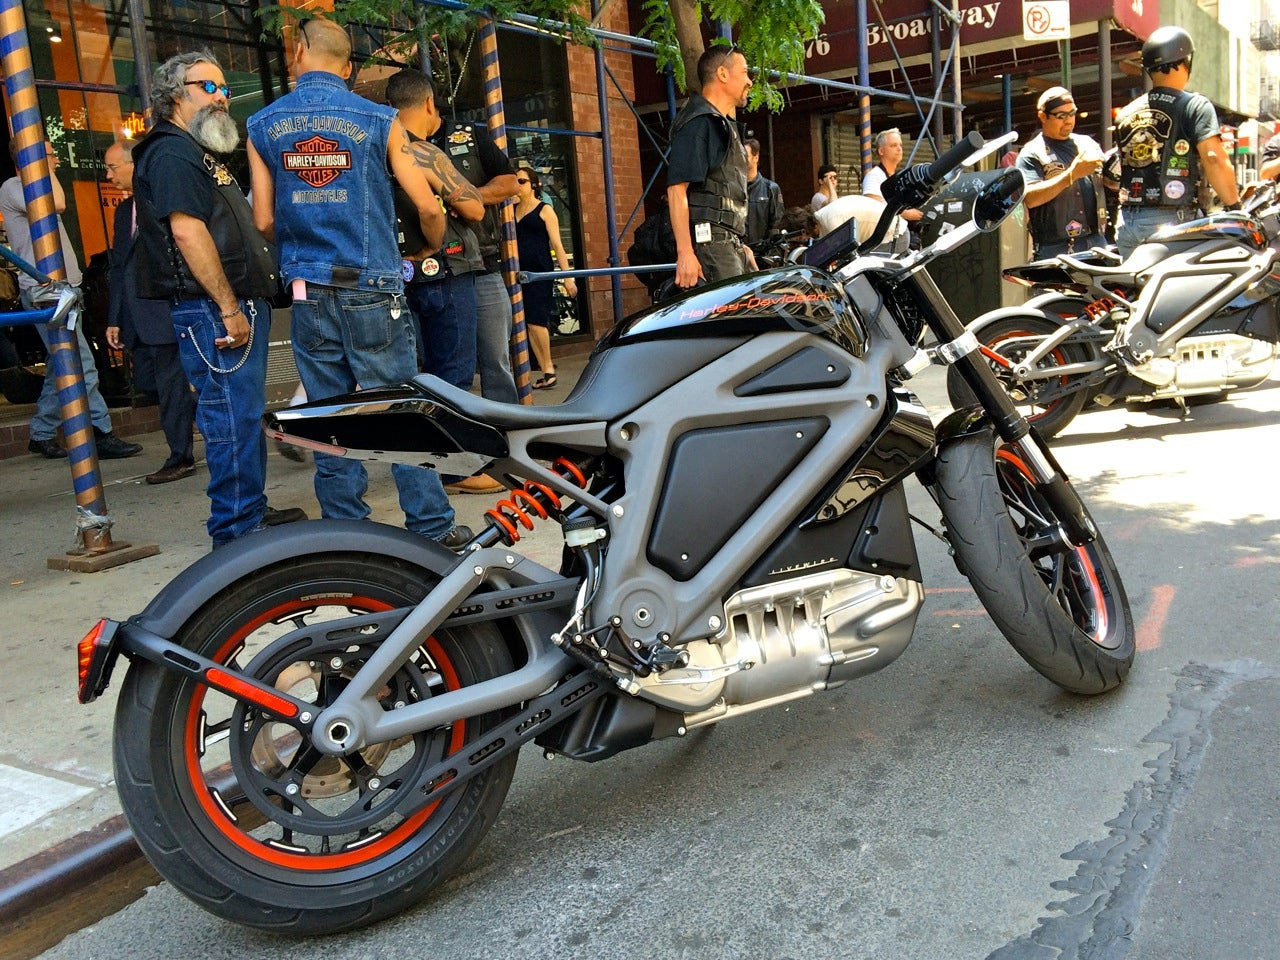 Harley-Davidson Has A Real LiveWire, Also Known As Its First Electric Motorcycle